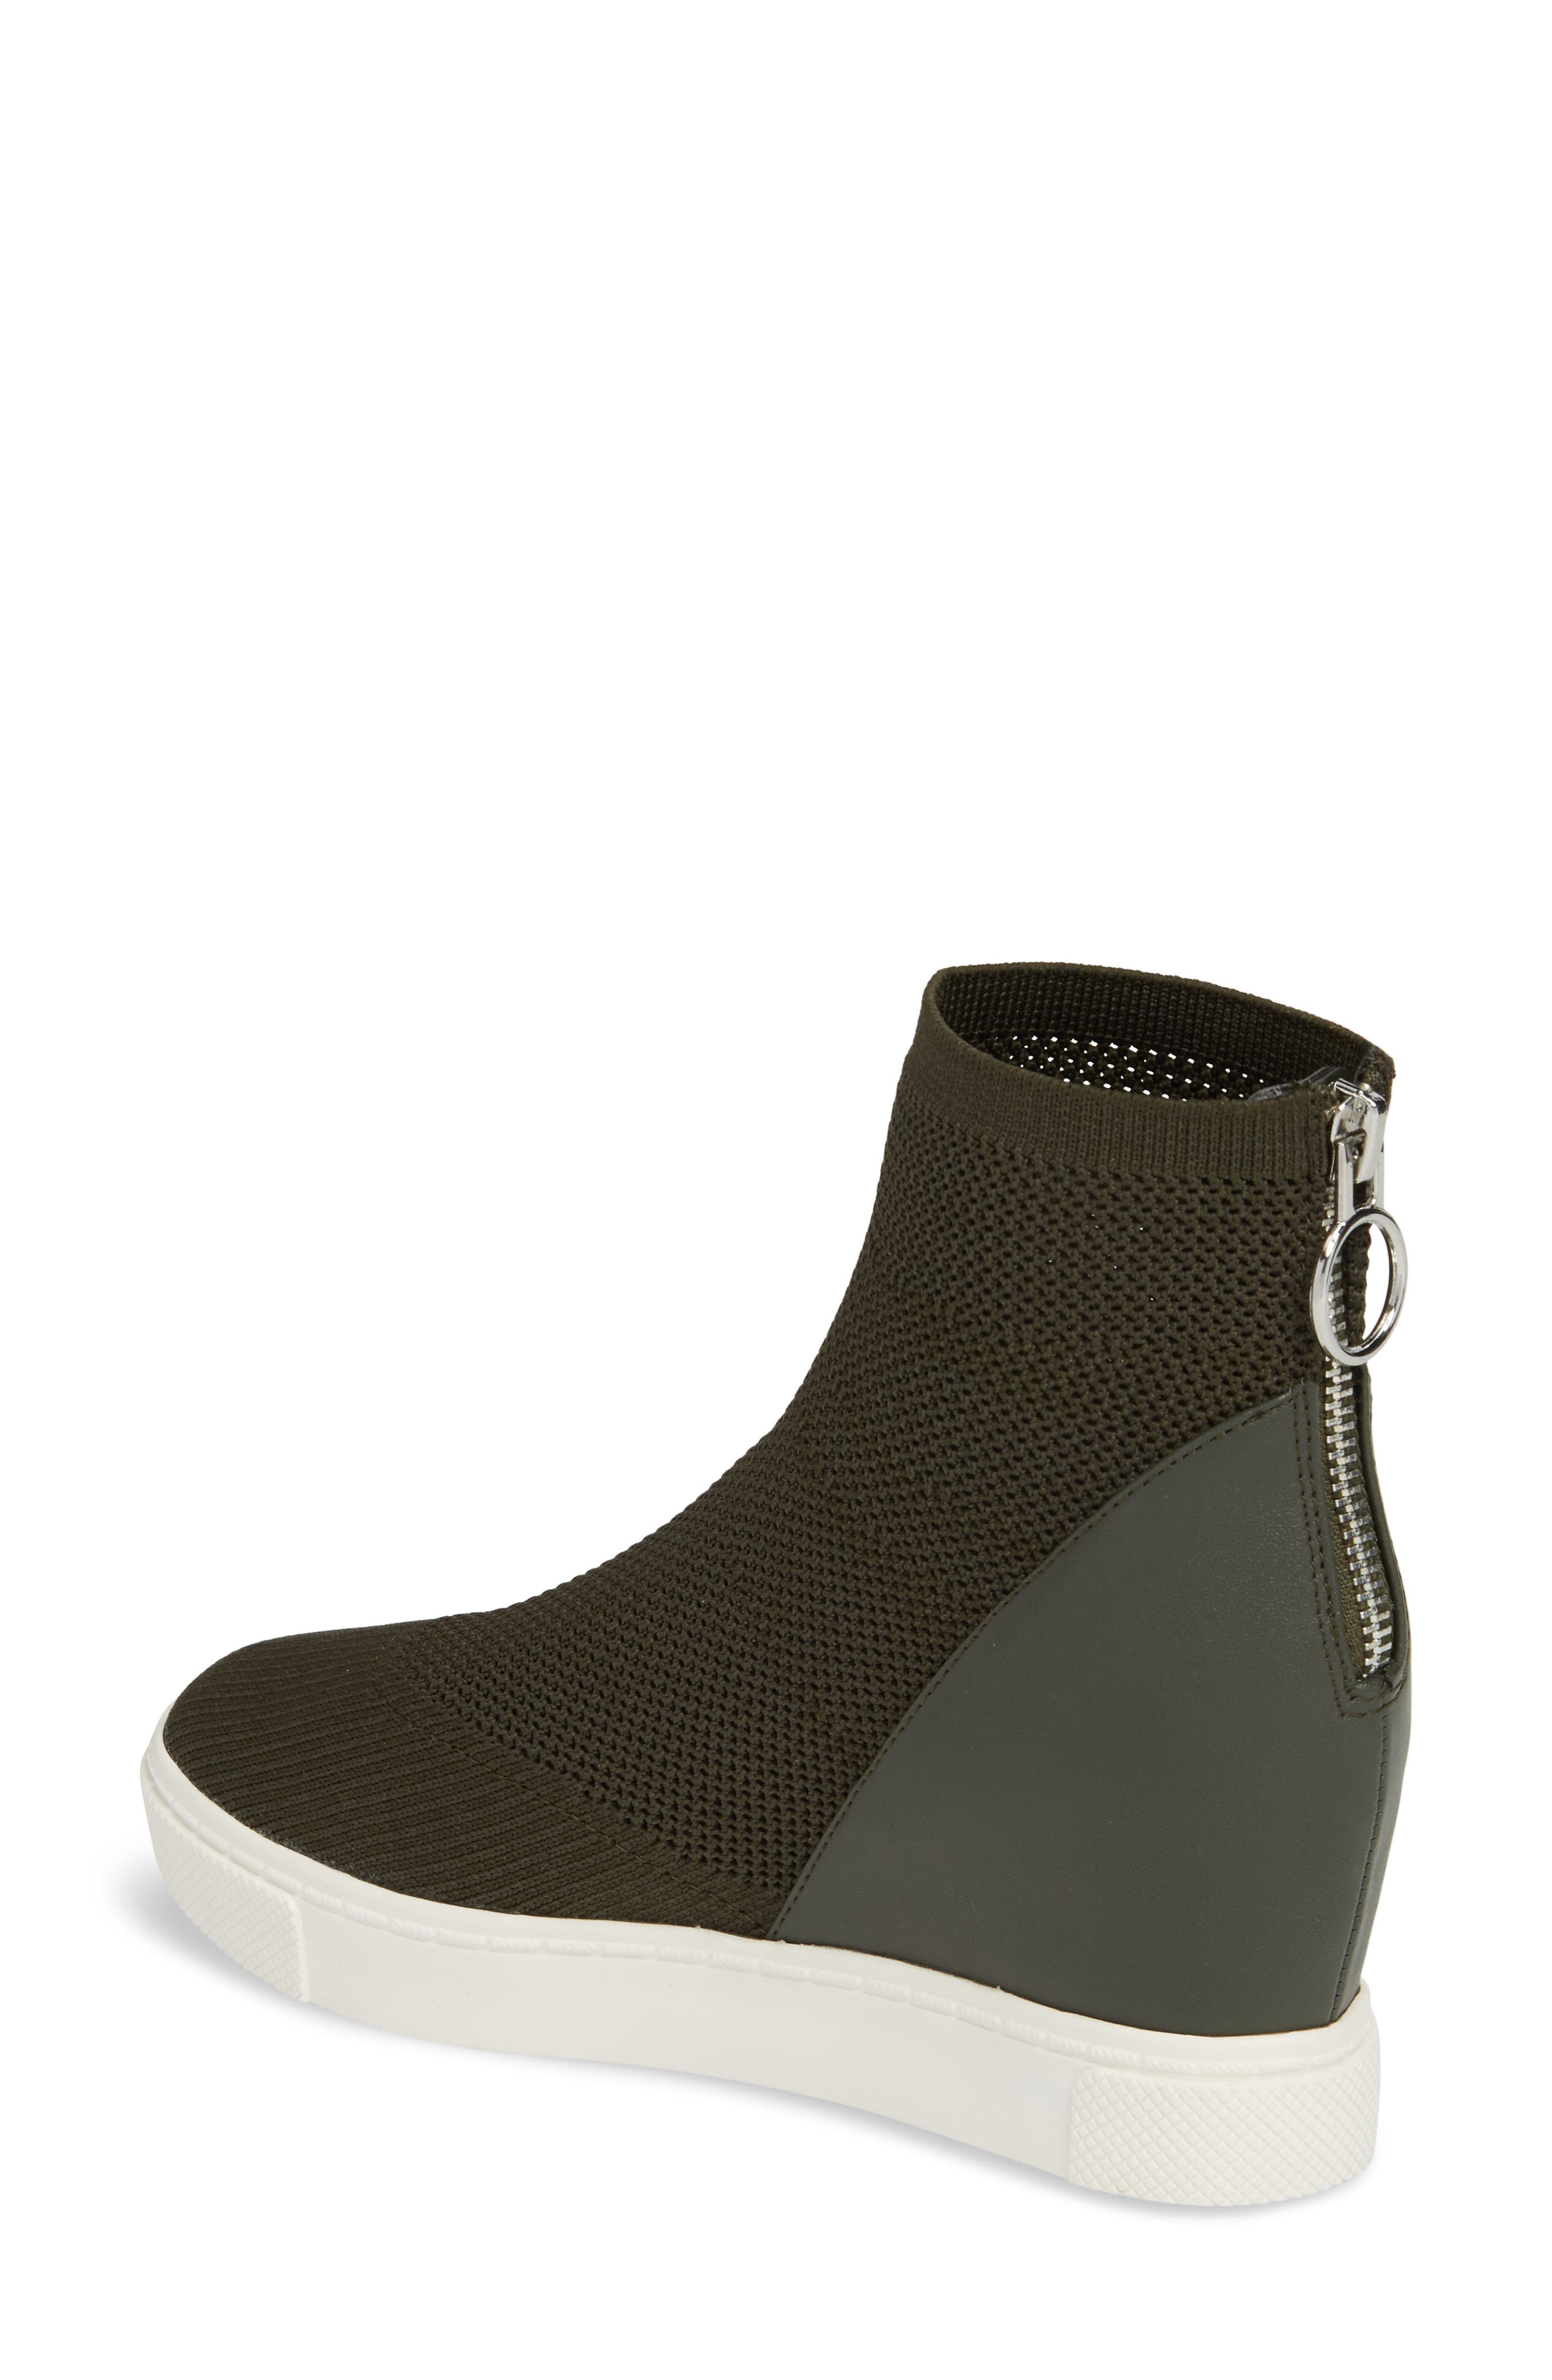 Lizzy Sneaker Bootie,                             Alternate thumbnail 4, color,